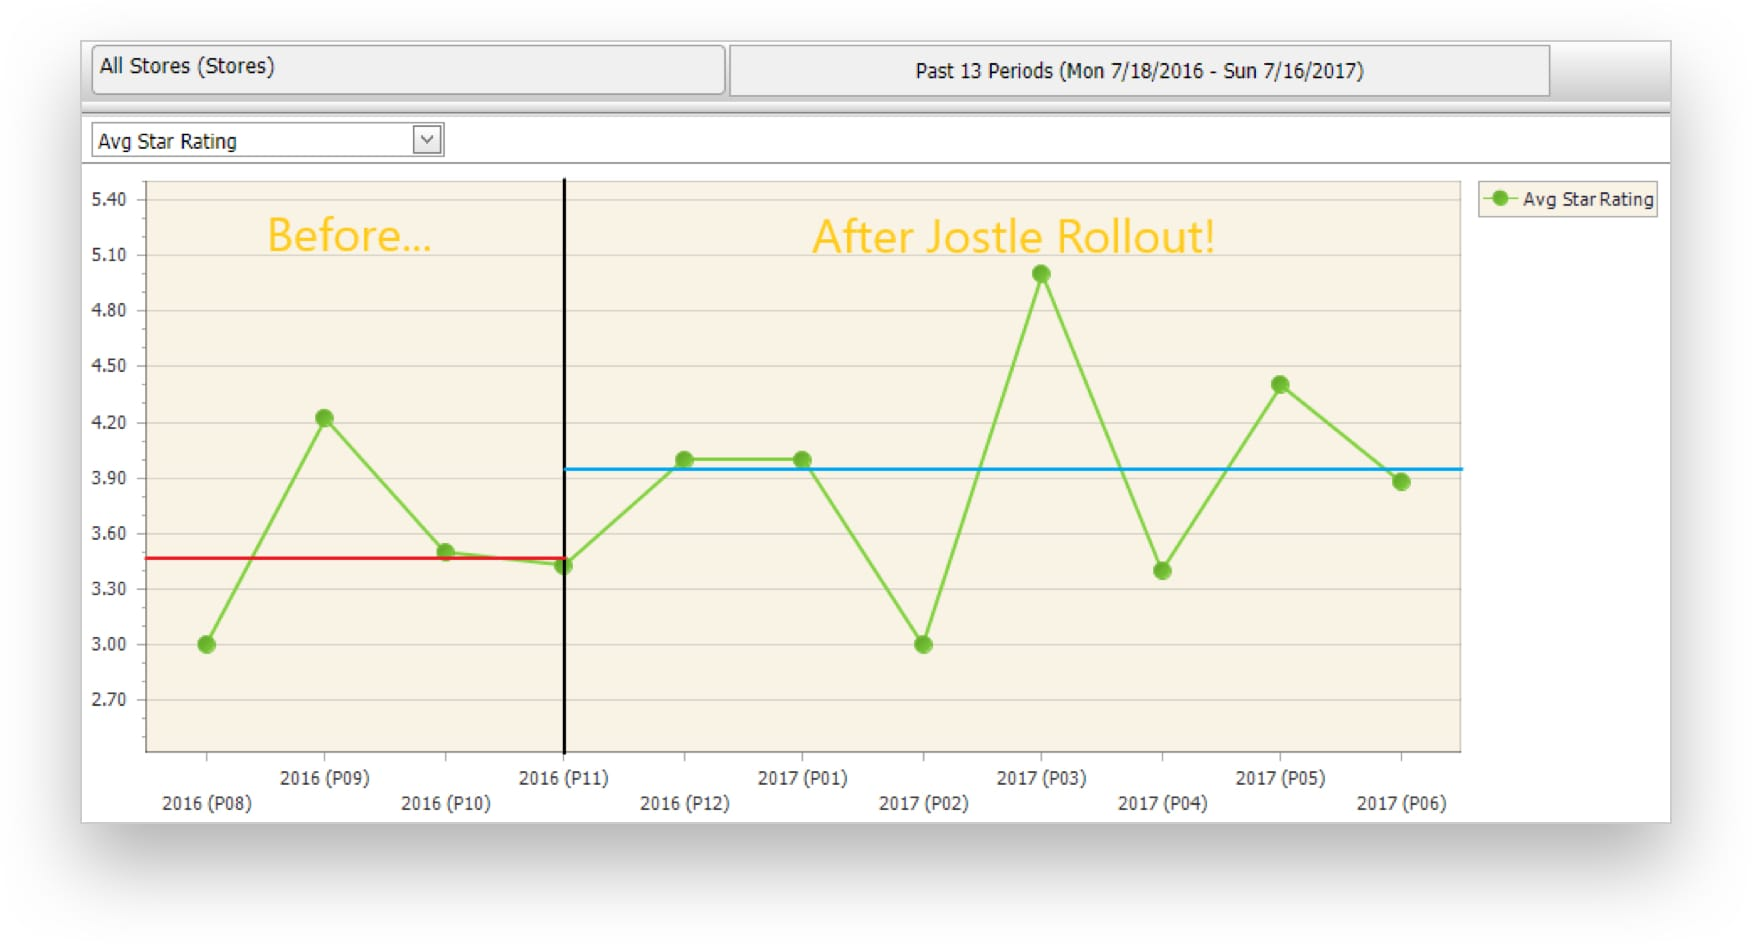 M&G's OER score before and after the Jostle intranet